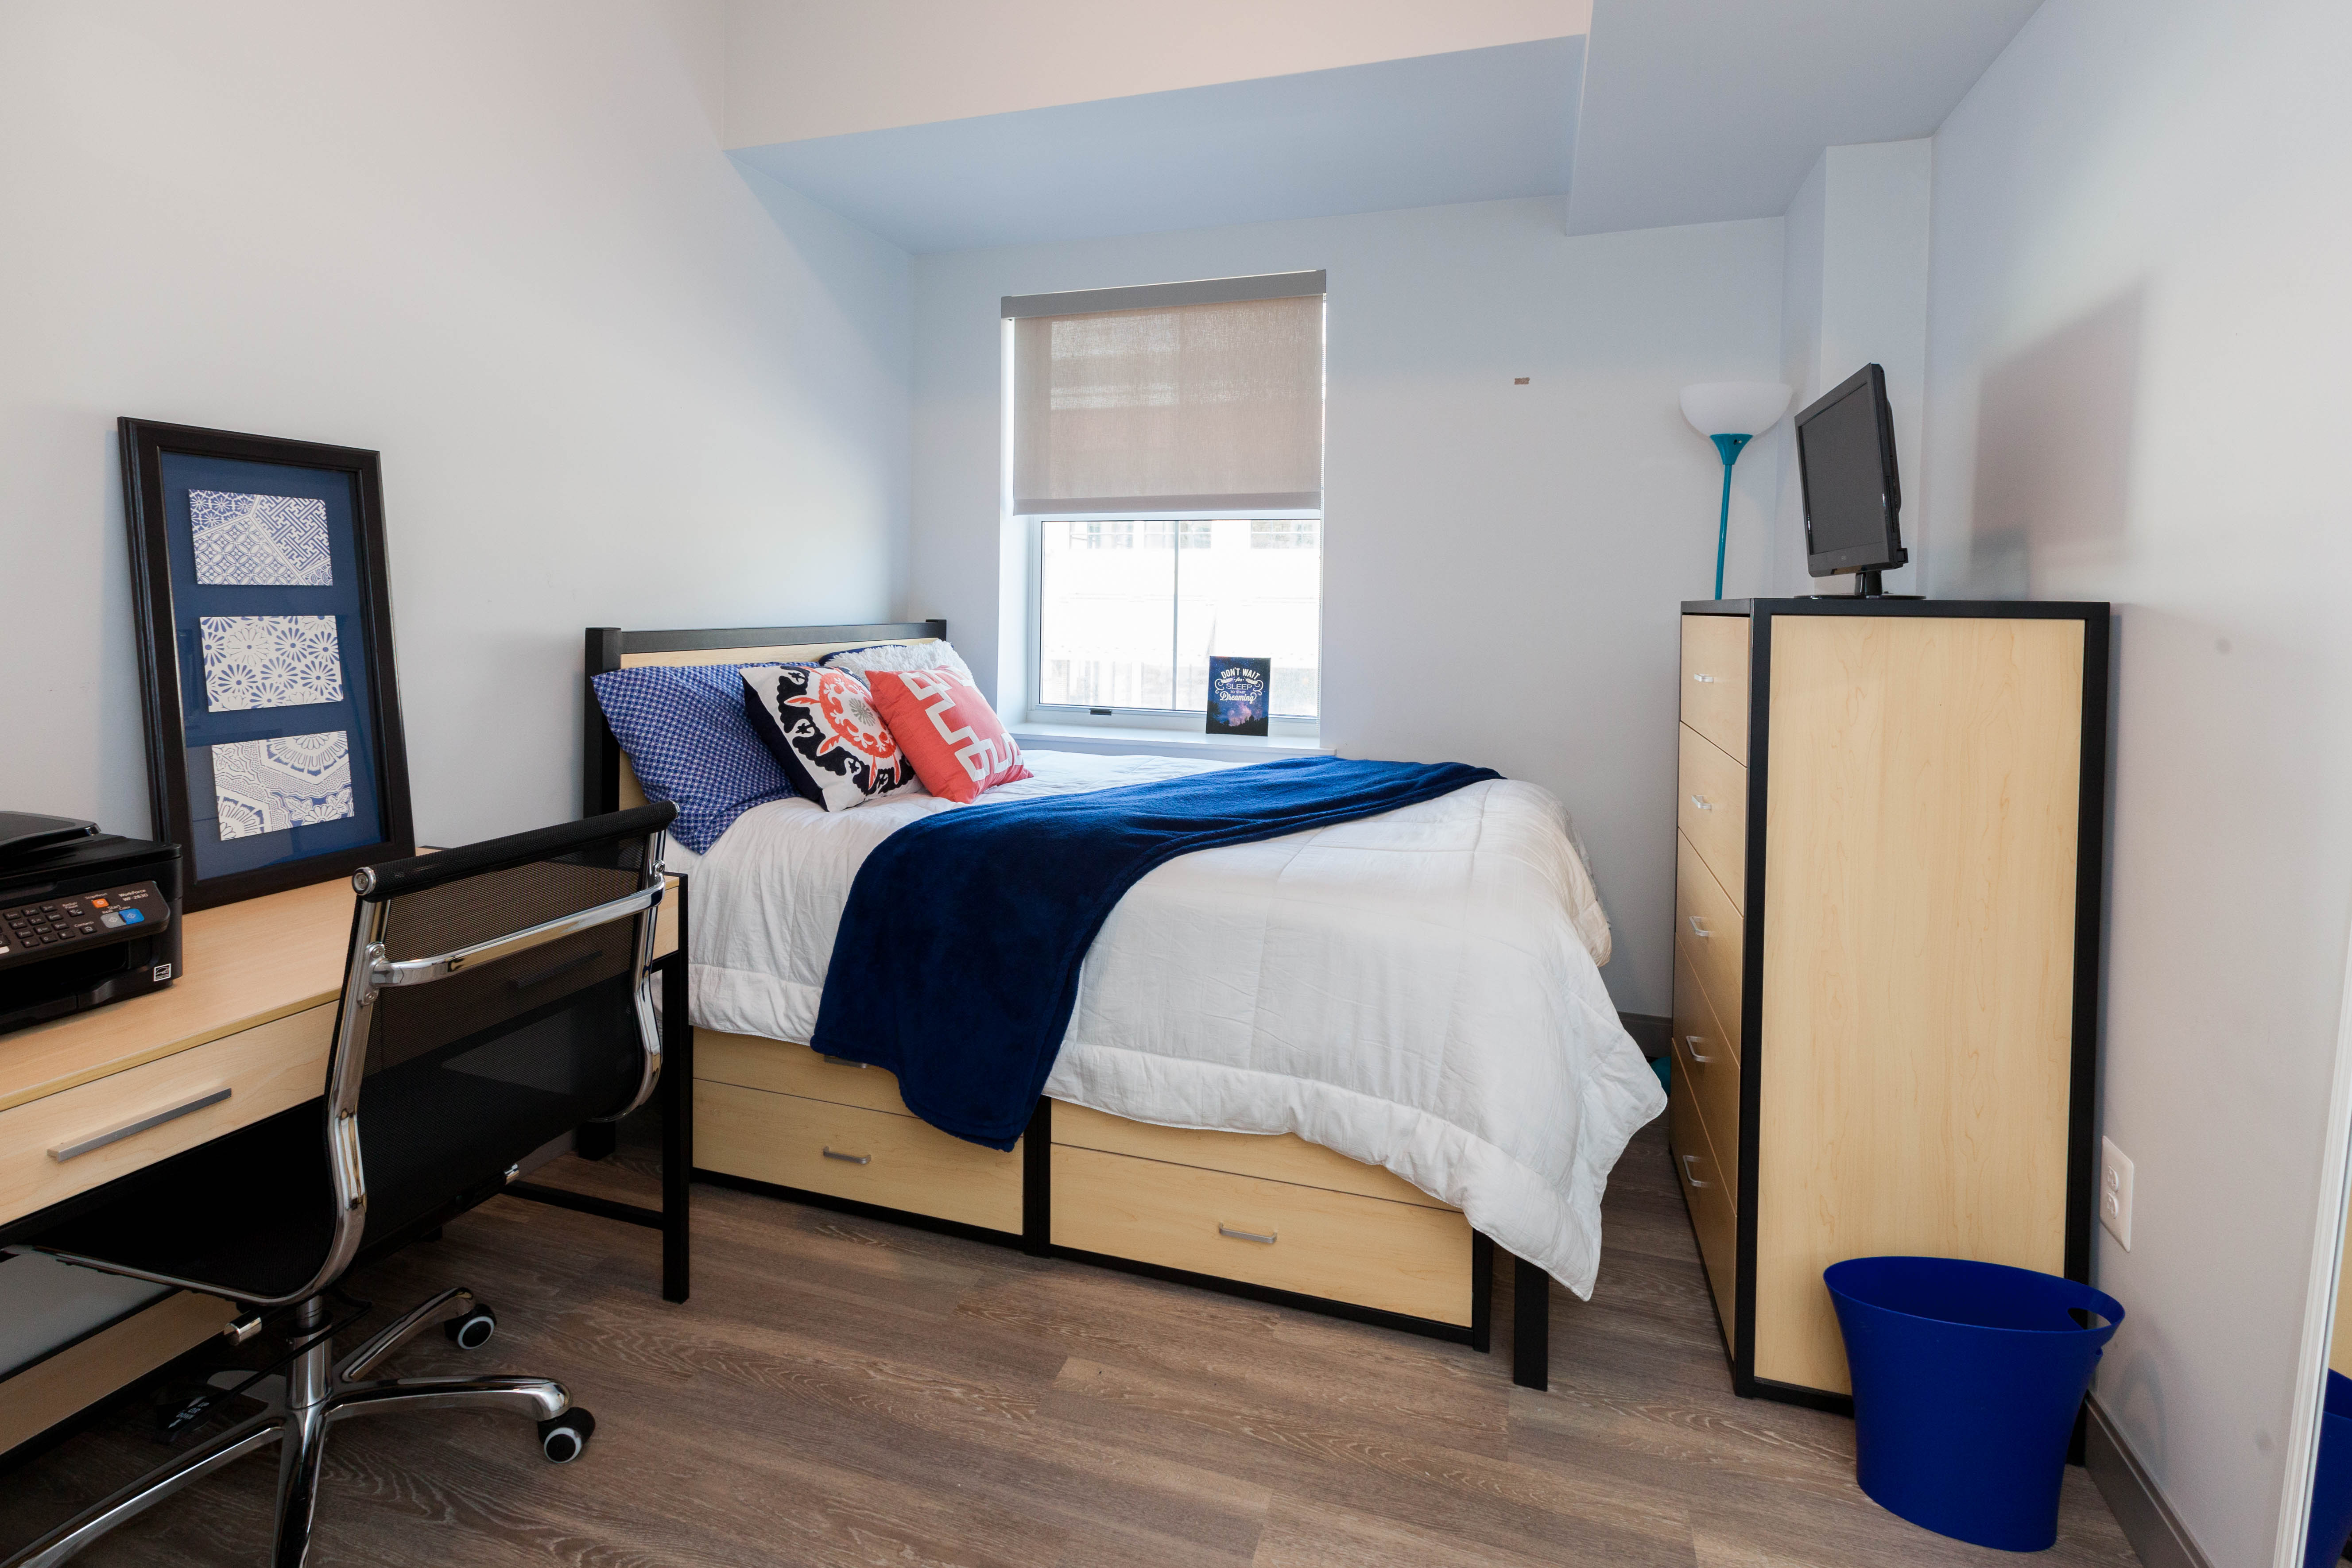 Opened In The Fall 2017 220 Rowan Boulevard Offers Best Of Both Worlds Privately Owned And Operated Student Housing Located Within Minutes